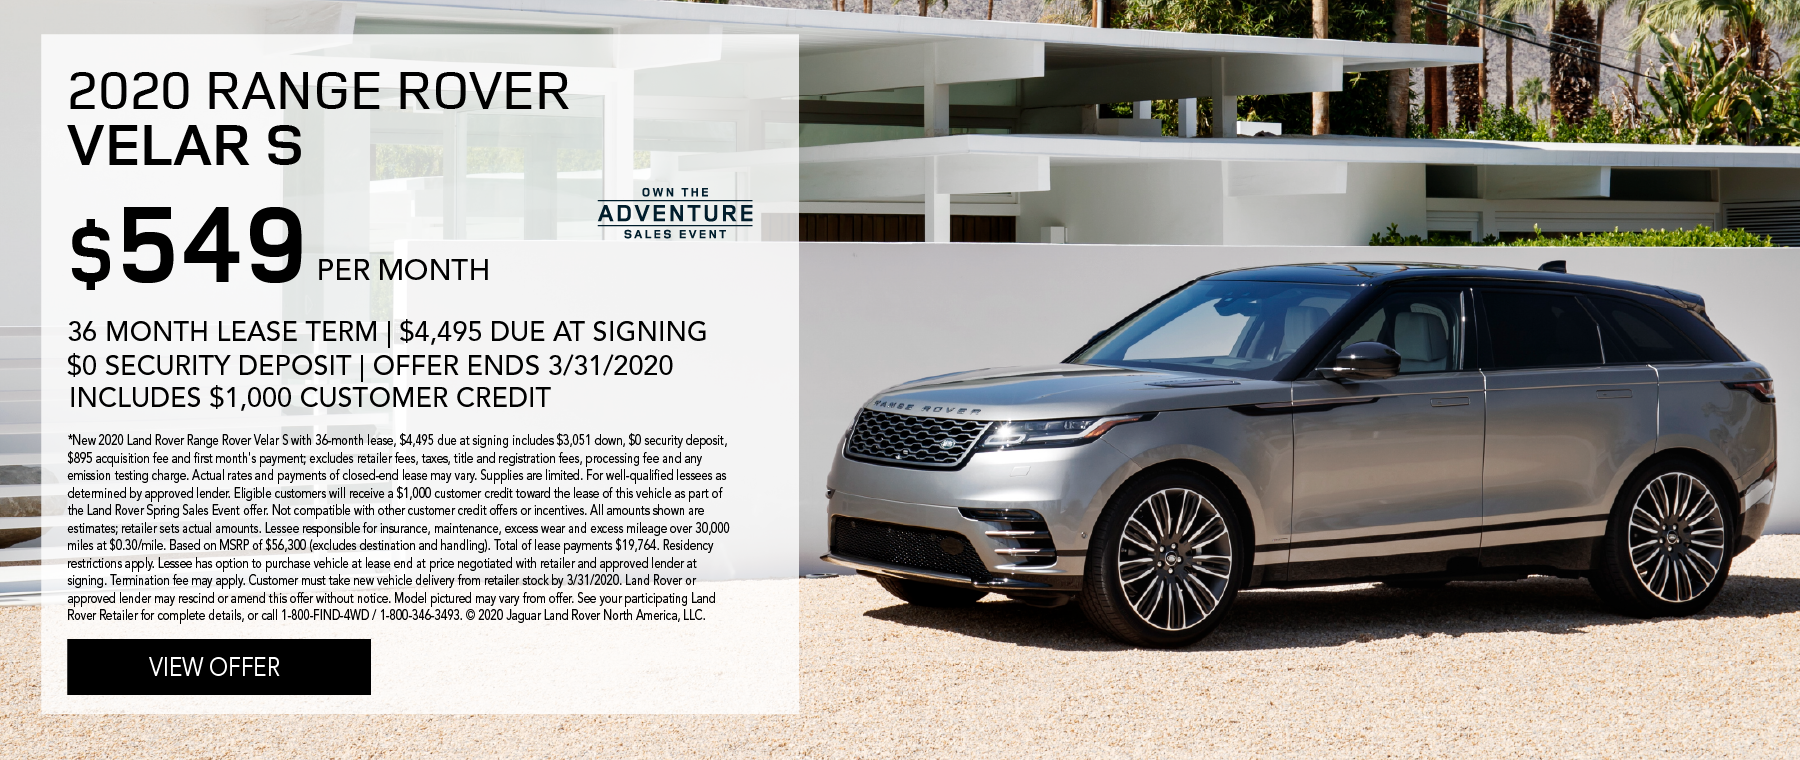 2020 RANGE ROVER VELAR S PARKED ON GRAVEL TERRAIN WITH MODERN WHITE BUILDING IN BACKGROUND. $549 PER MONTH. 36 MONTH LEASE TERM. $4,495 CASH DUE AT SIGNING. INCLUDES $1,000 CUSTOMER CREDIT. $0 SECURITY DEPOSIT. 10,000 MILES PER YEAR. OFFER ENDS 3/31/2020. OWN THE ADVENTURE SALES EVENT.